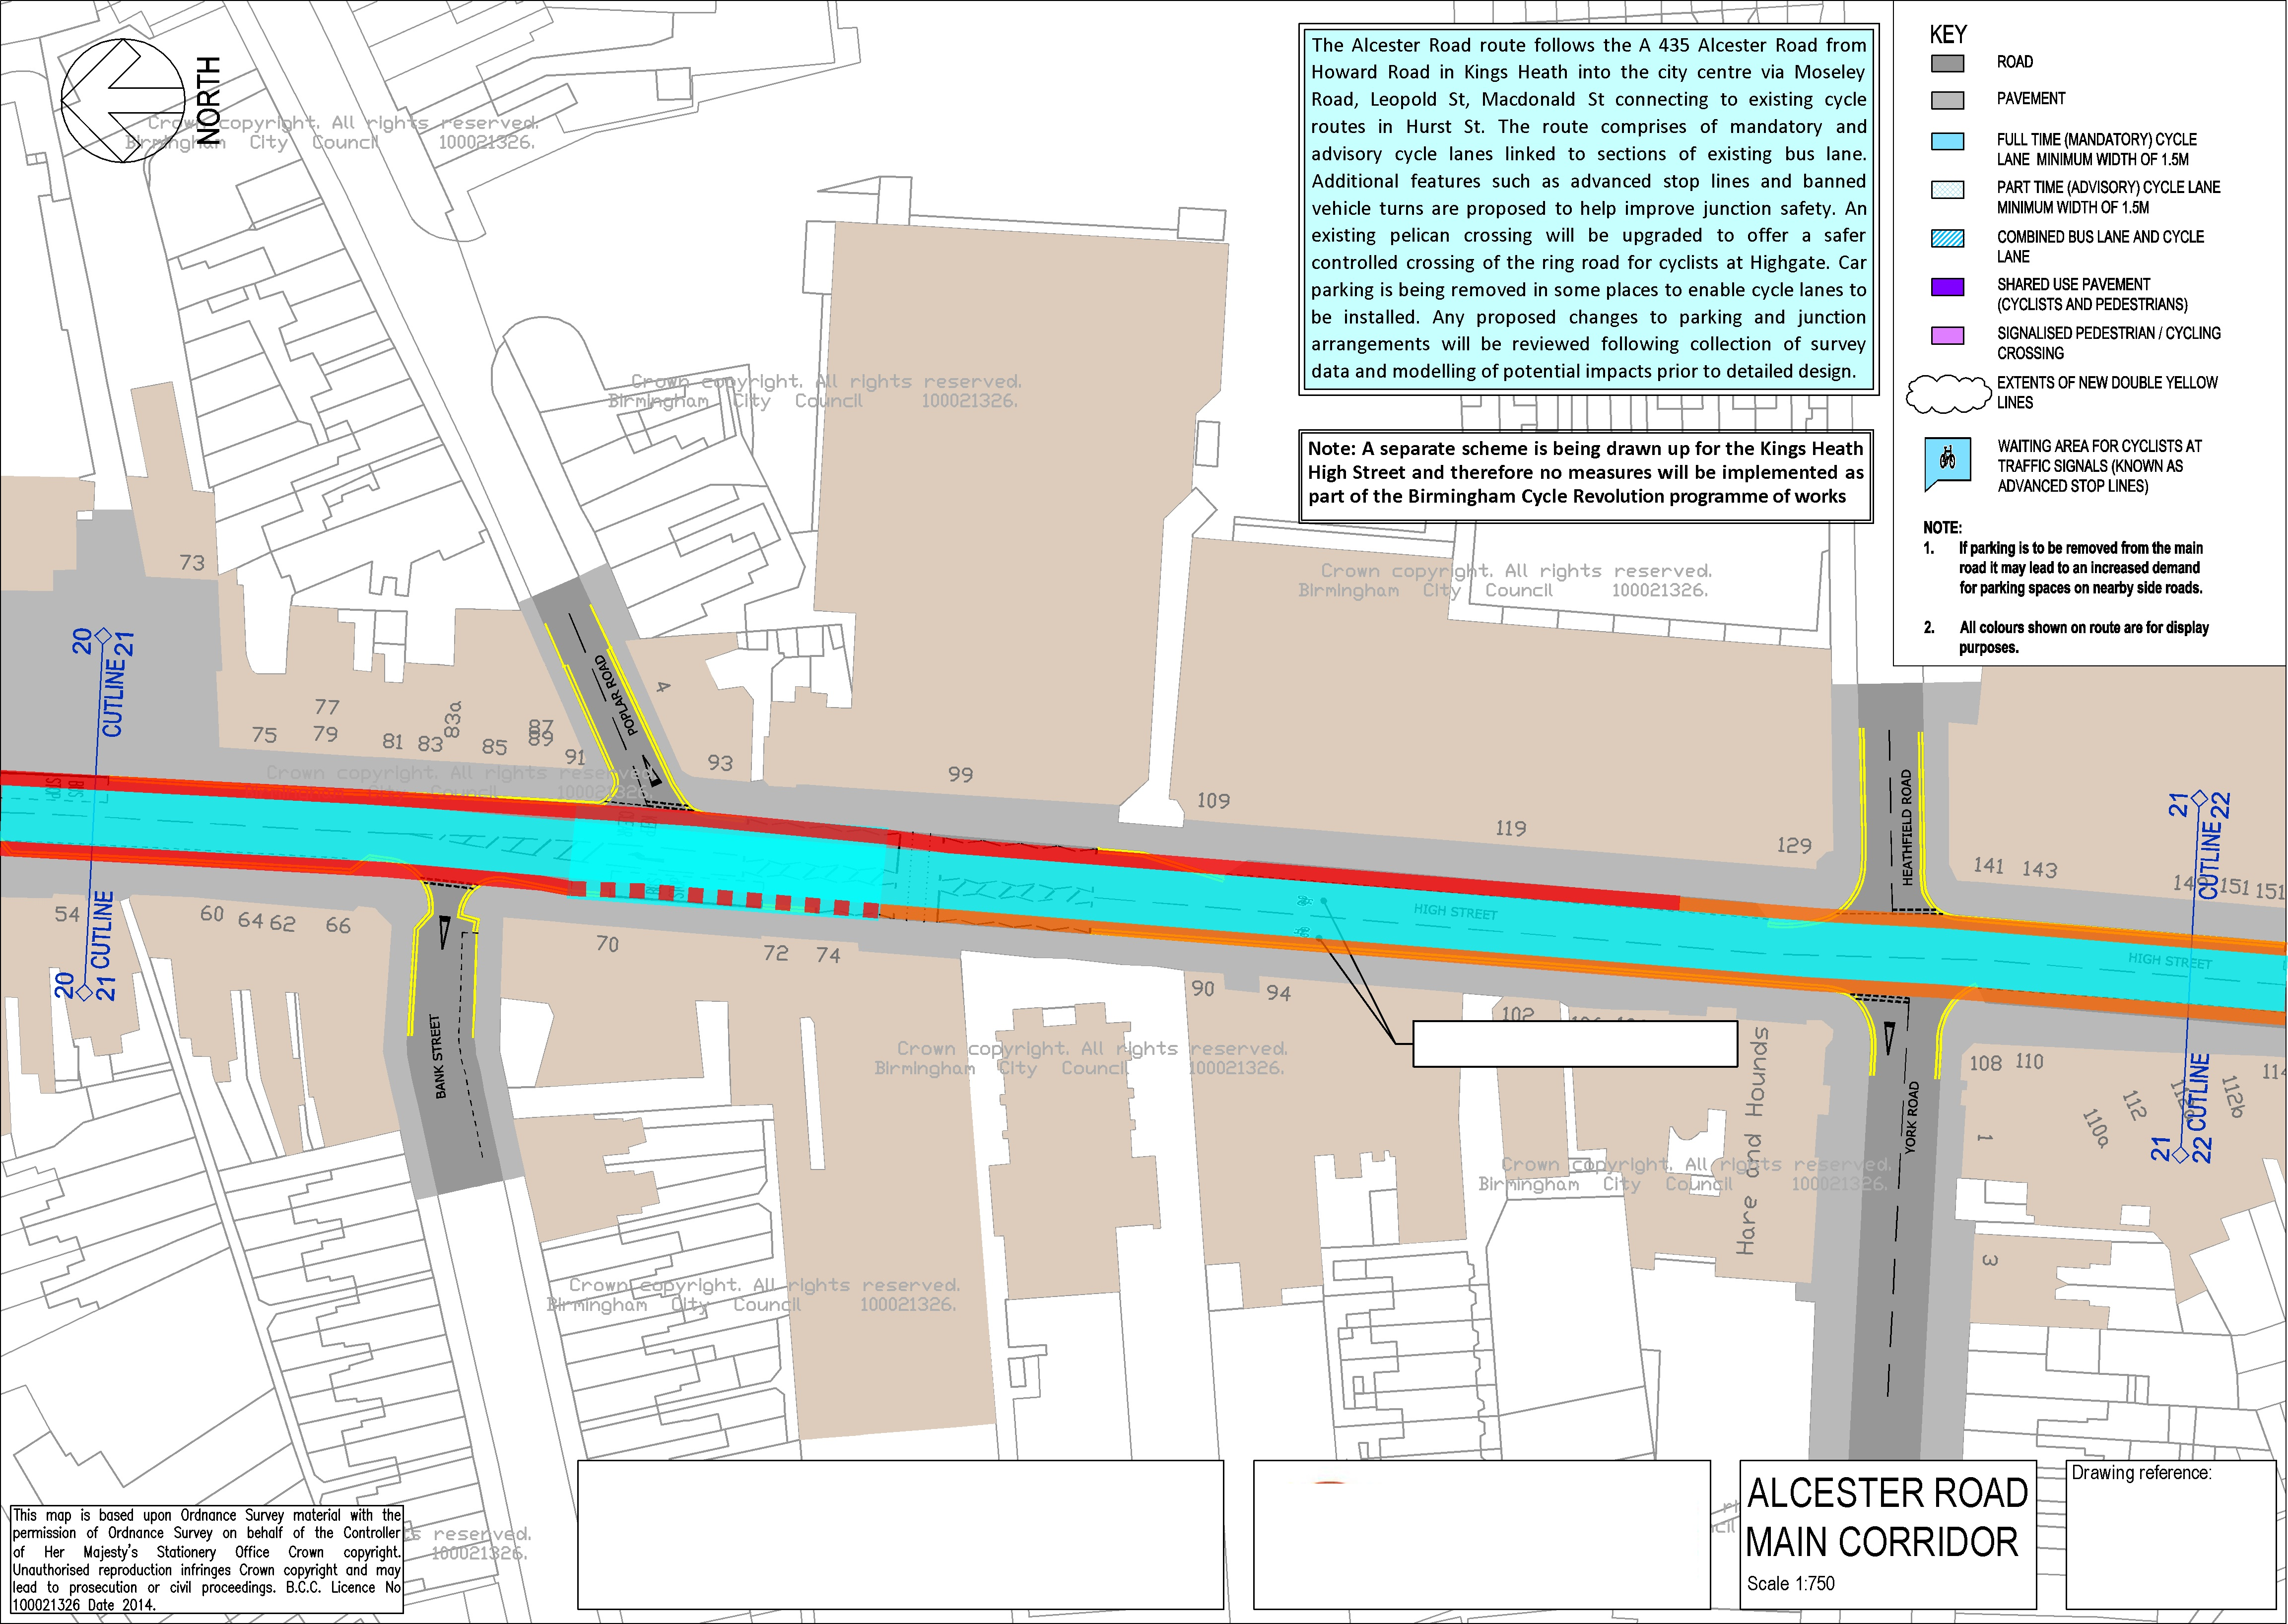 Push Bikes proposal for Kings Heath (section 3)